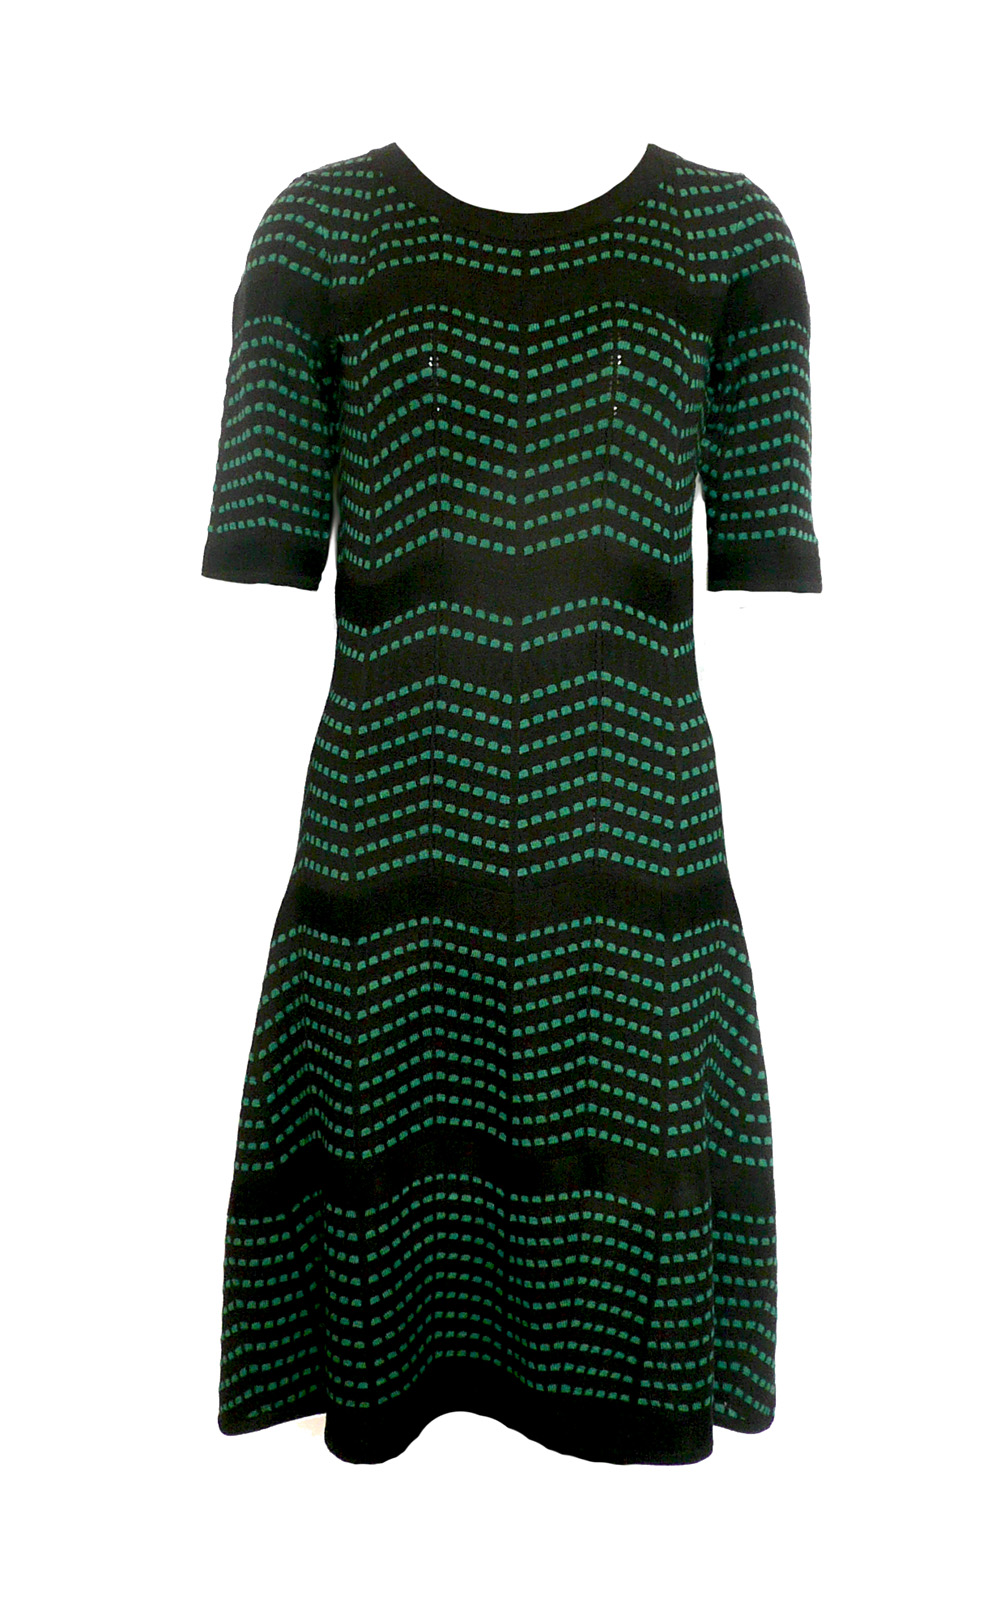 dress grn knit chevron.jpg